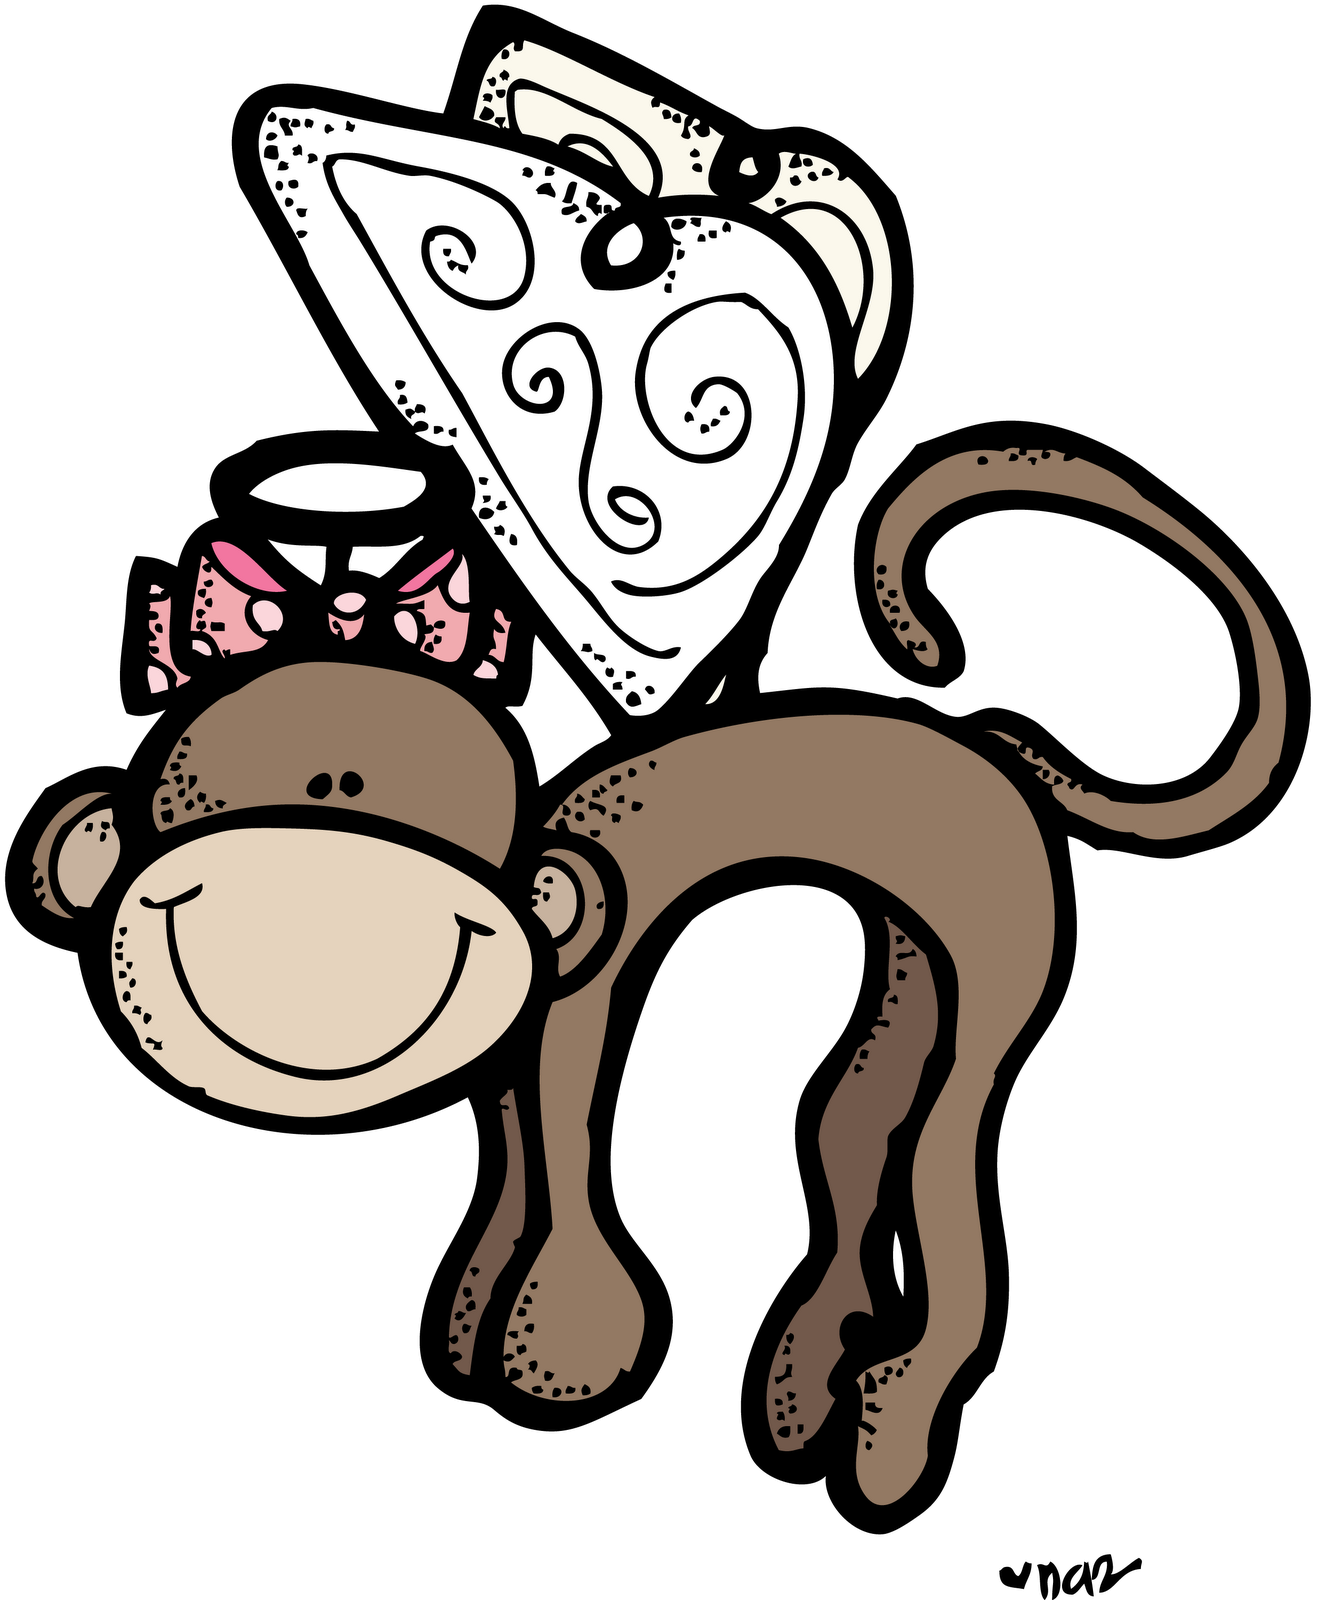 Monkey full color png. Flying melonheadz colored pixels